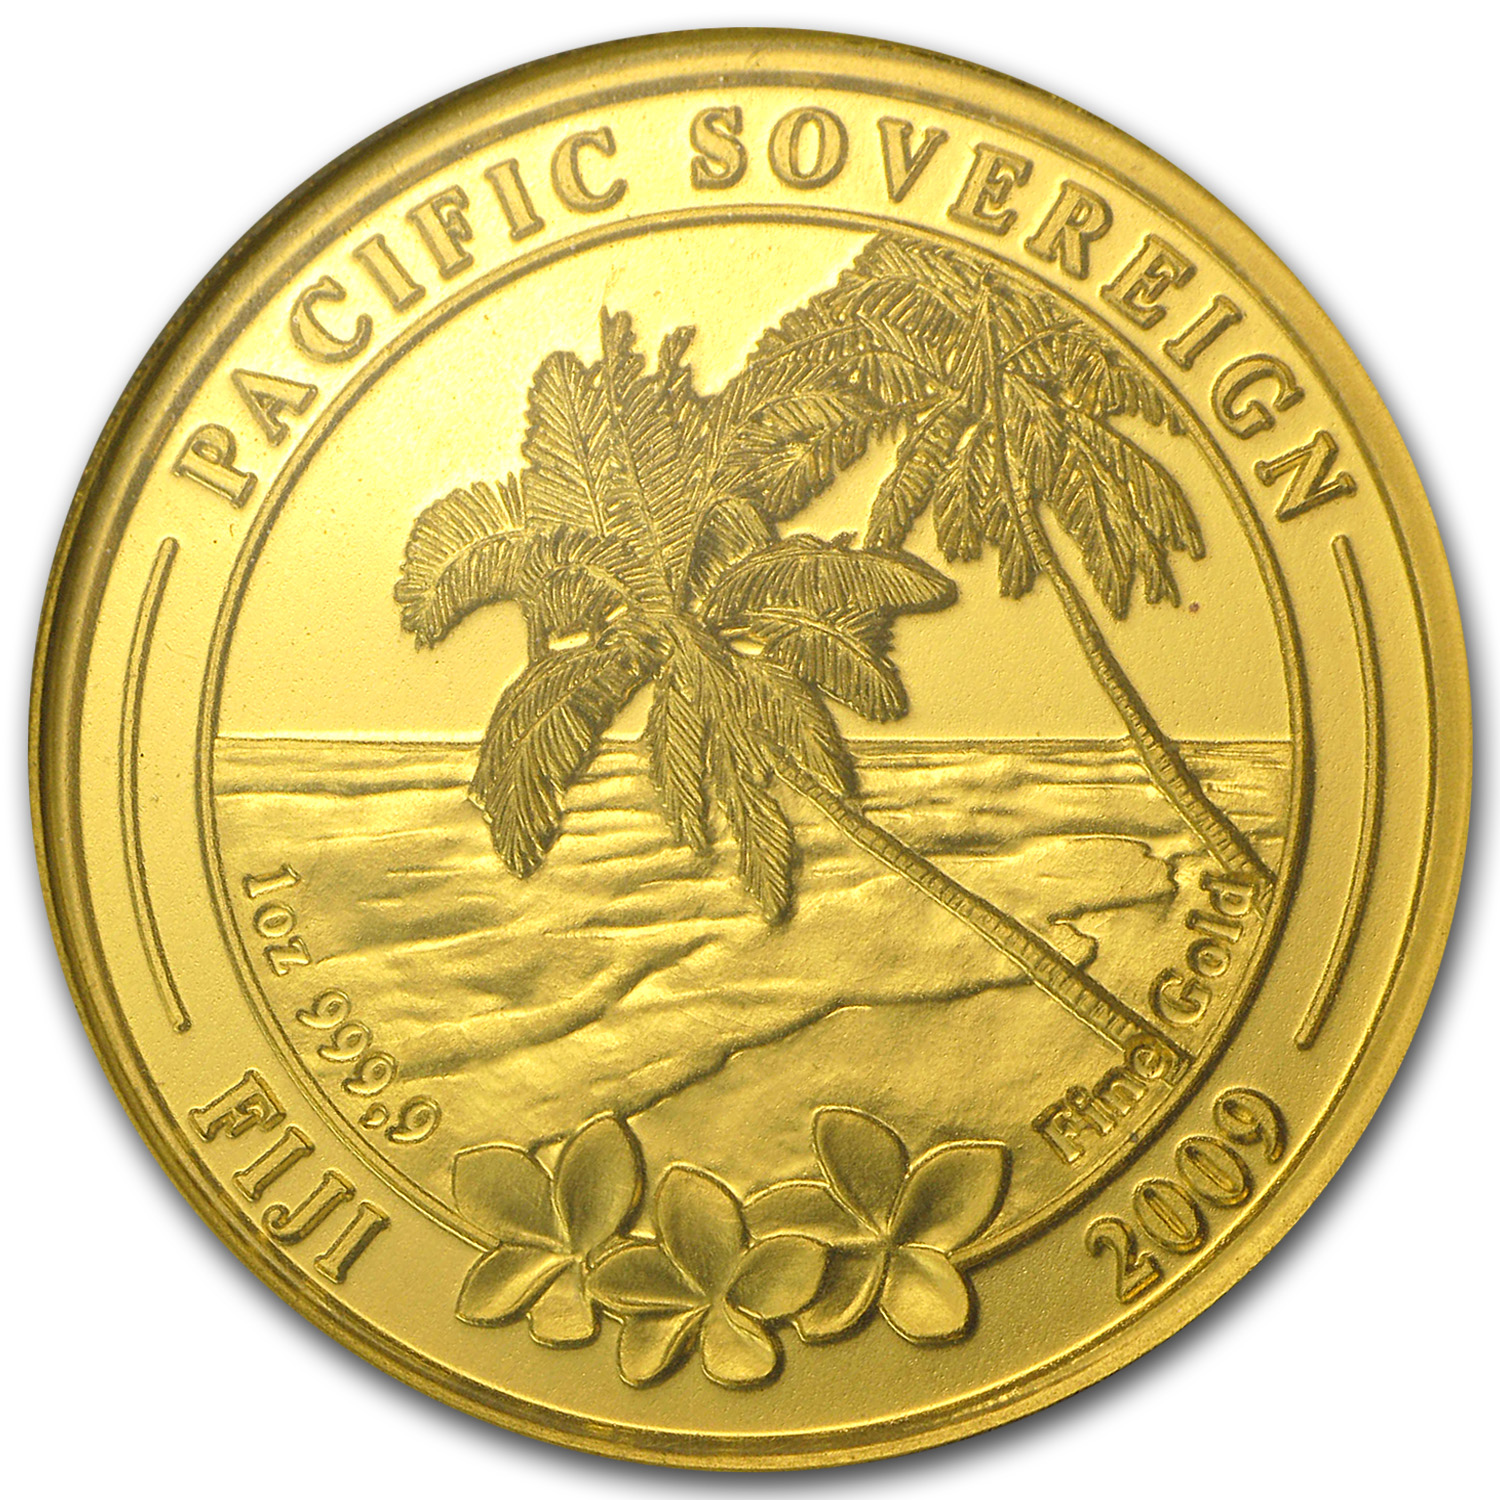 2009 1 oz Gold Fiji $100 Pacific Sovereign BU (In Assay Card)